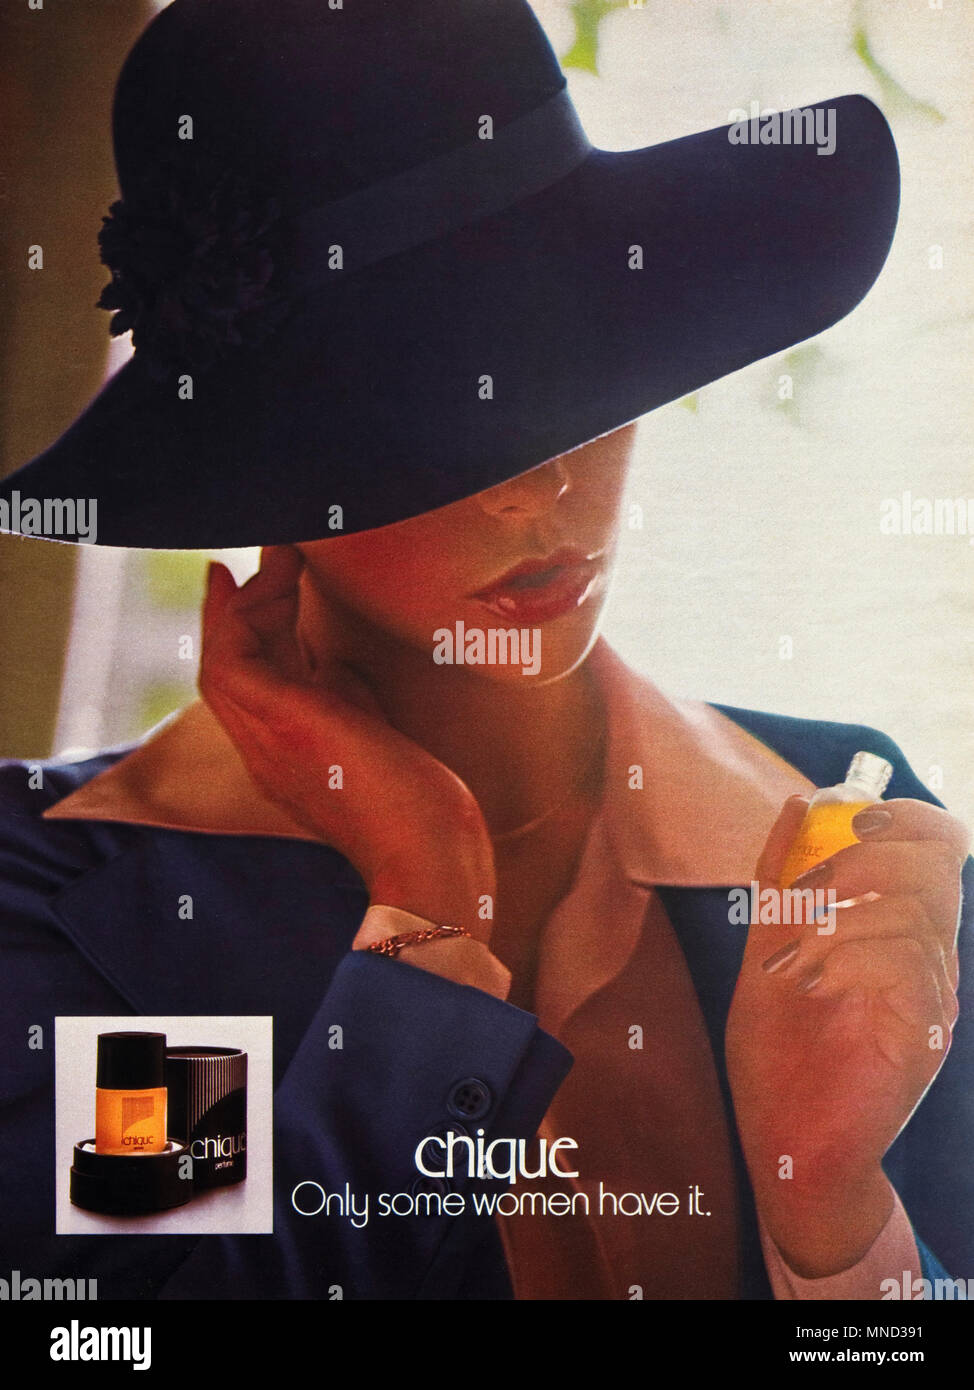 1980s original old vintage advertisement advertising Chique perfume for women advert in English magazine circa 1980 - Stock Image